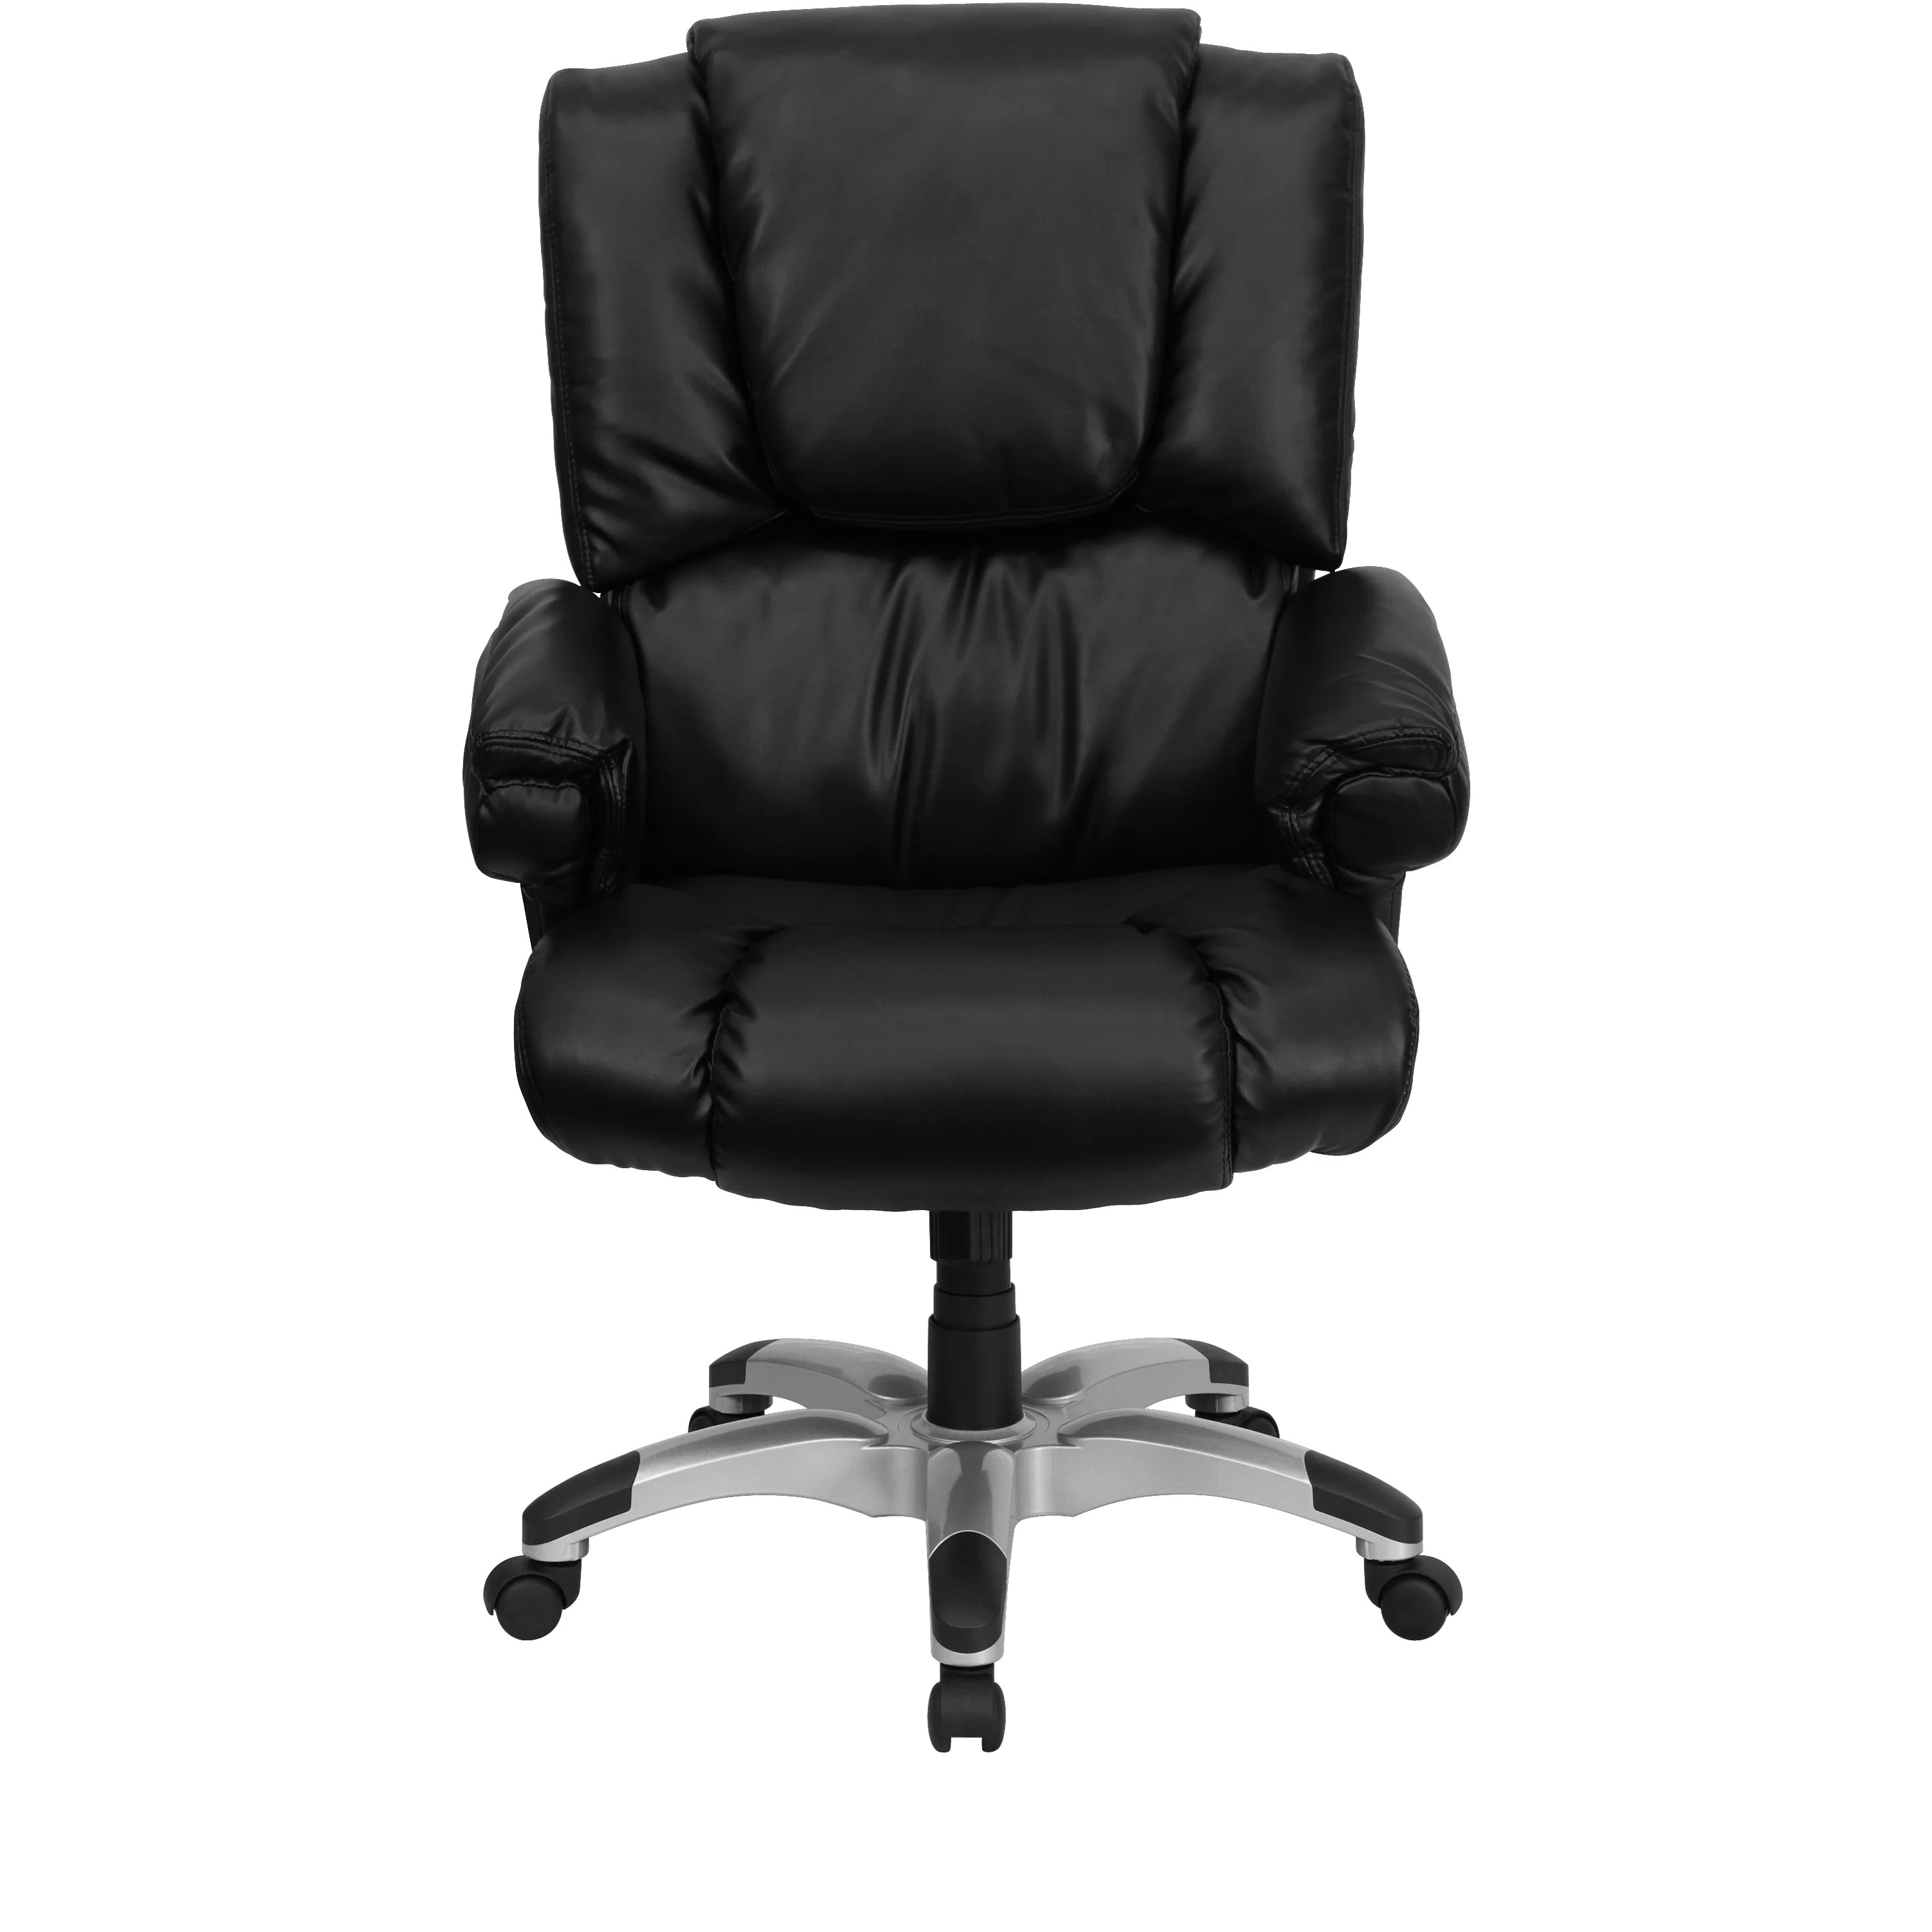 Go Chair Flash Furniture High Back Overstuffed Executive Chair With